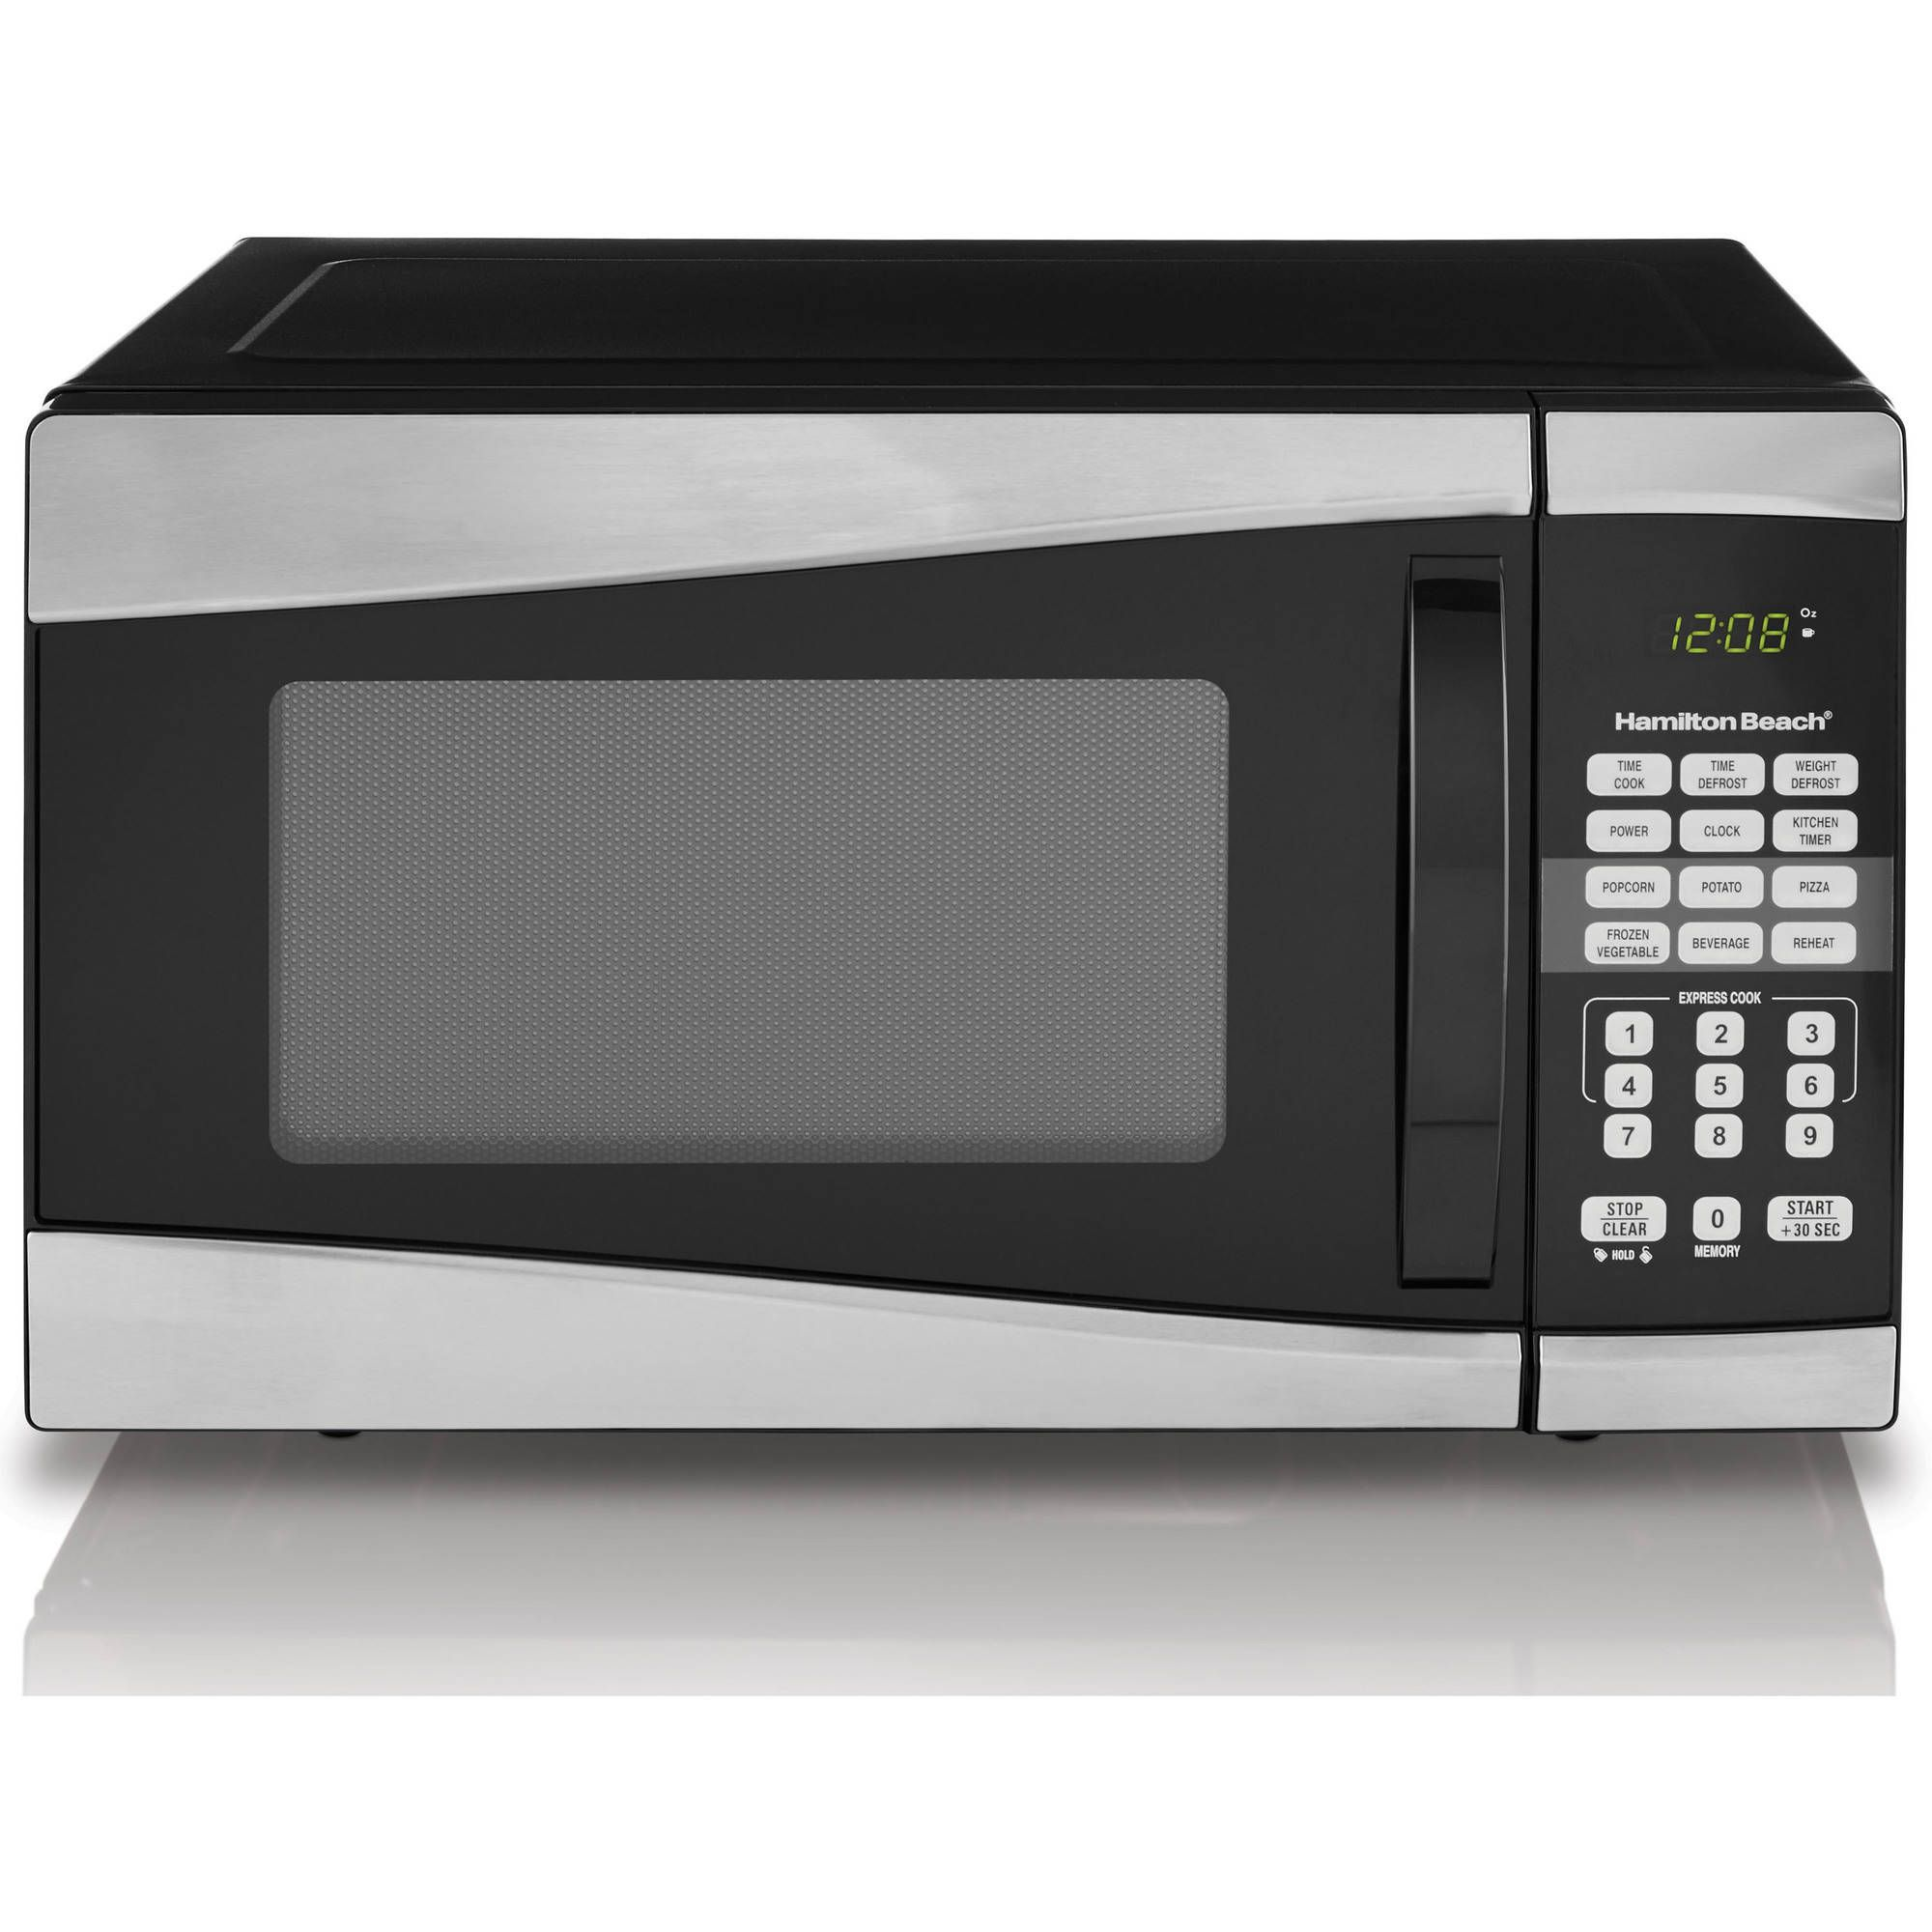 Exceptionnel SALE: HAMILTON BEACH 0.9 CU FT 900W MICROWAVE, STAINLESS STEEL | $55,00